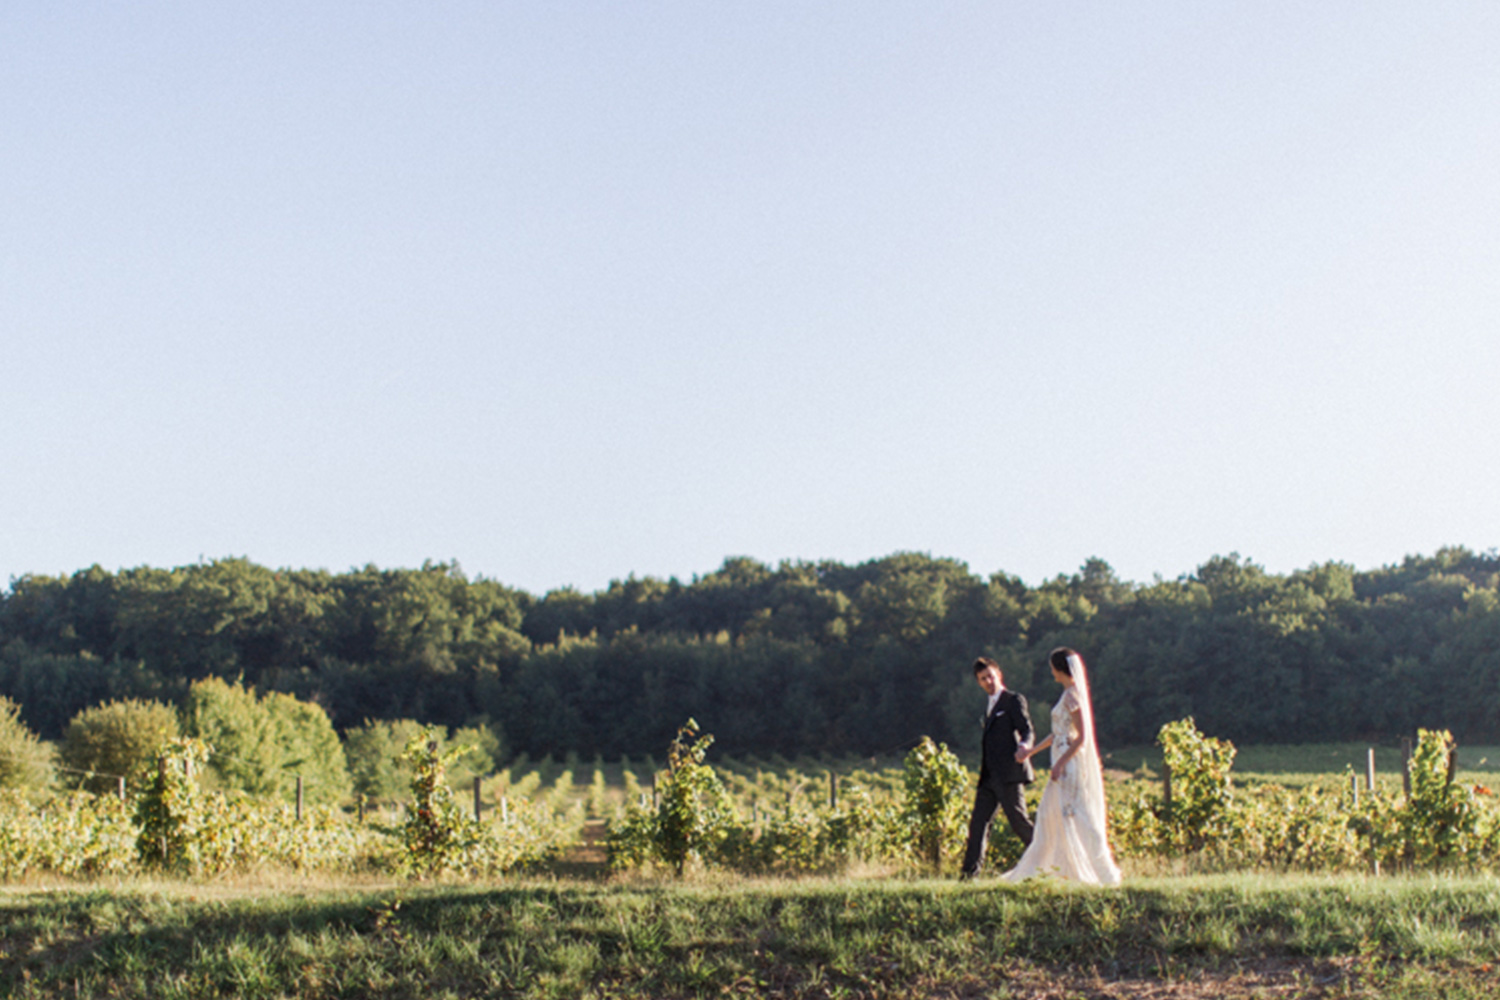 Autumn - The autumn evening light was perfect for these stunning shots of Jacqui in the vines, just after the harvest.